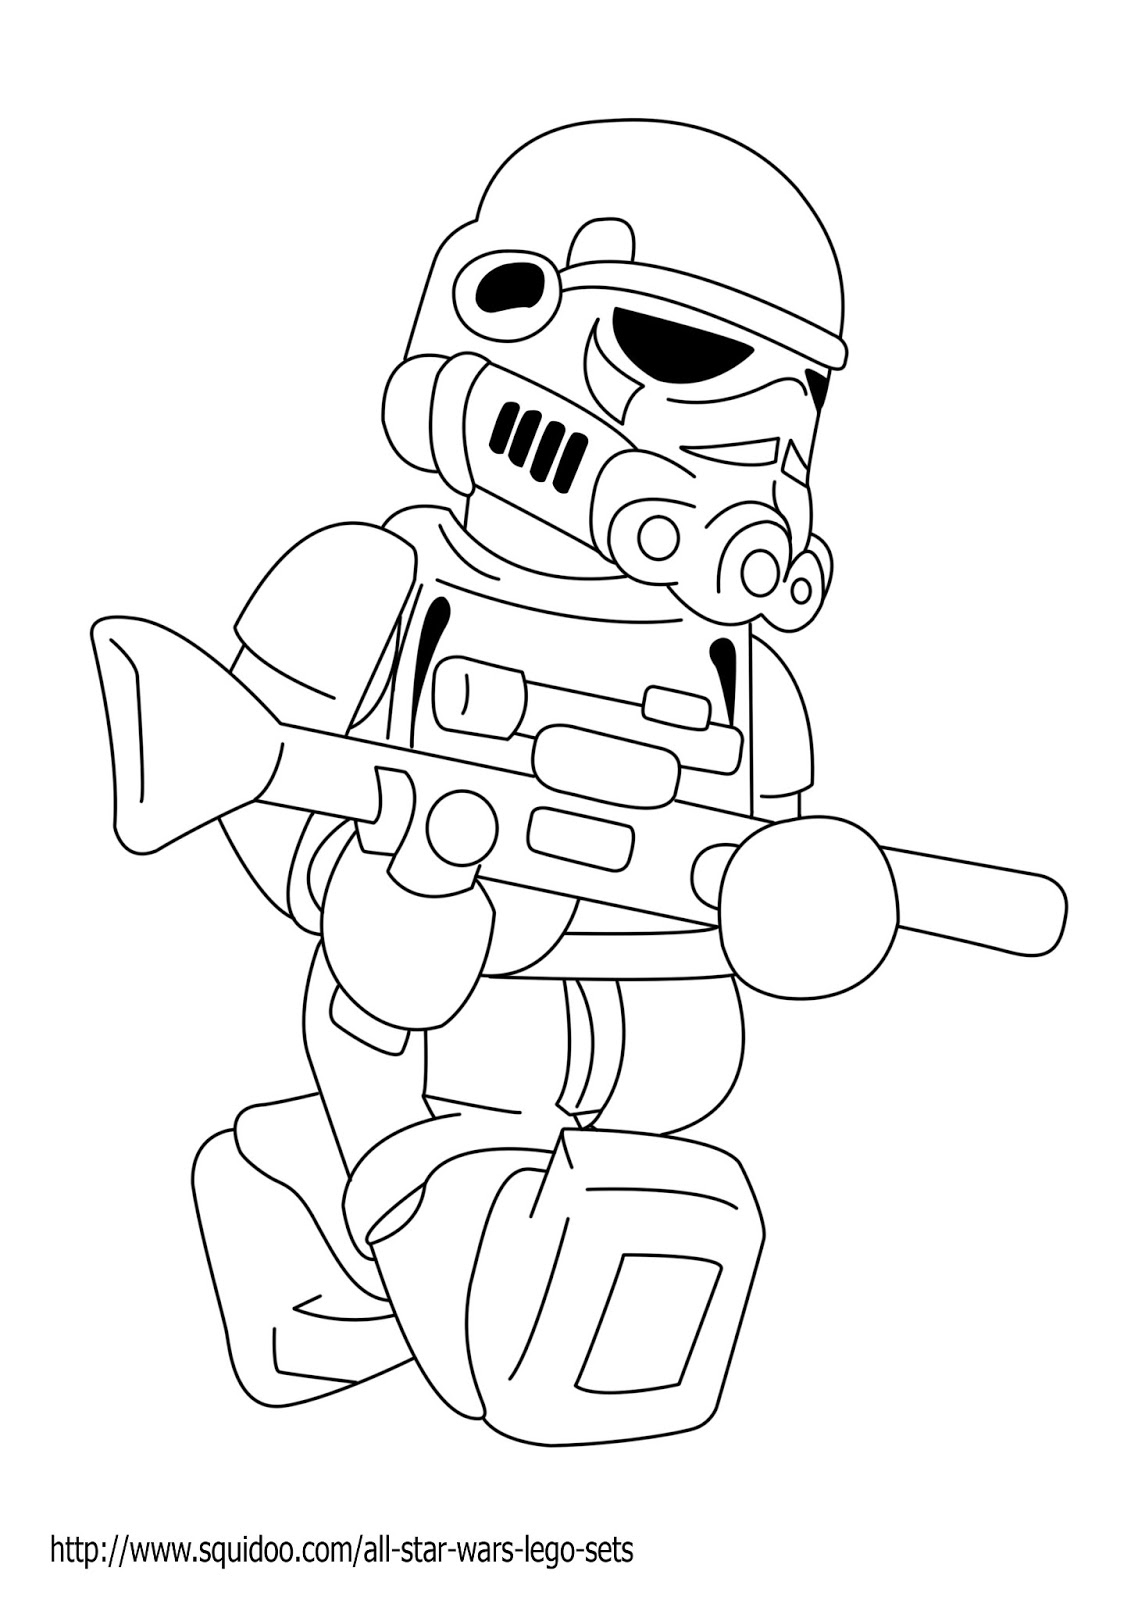 Lego darth vader drawing at getdrawings com free for personal use